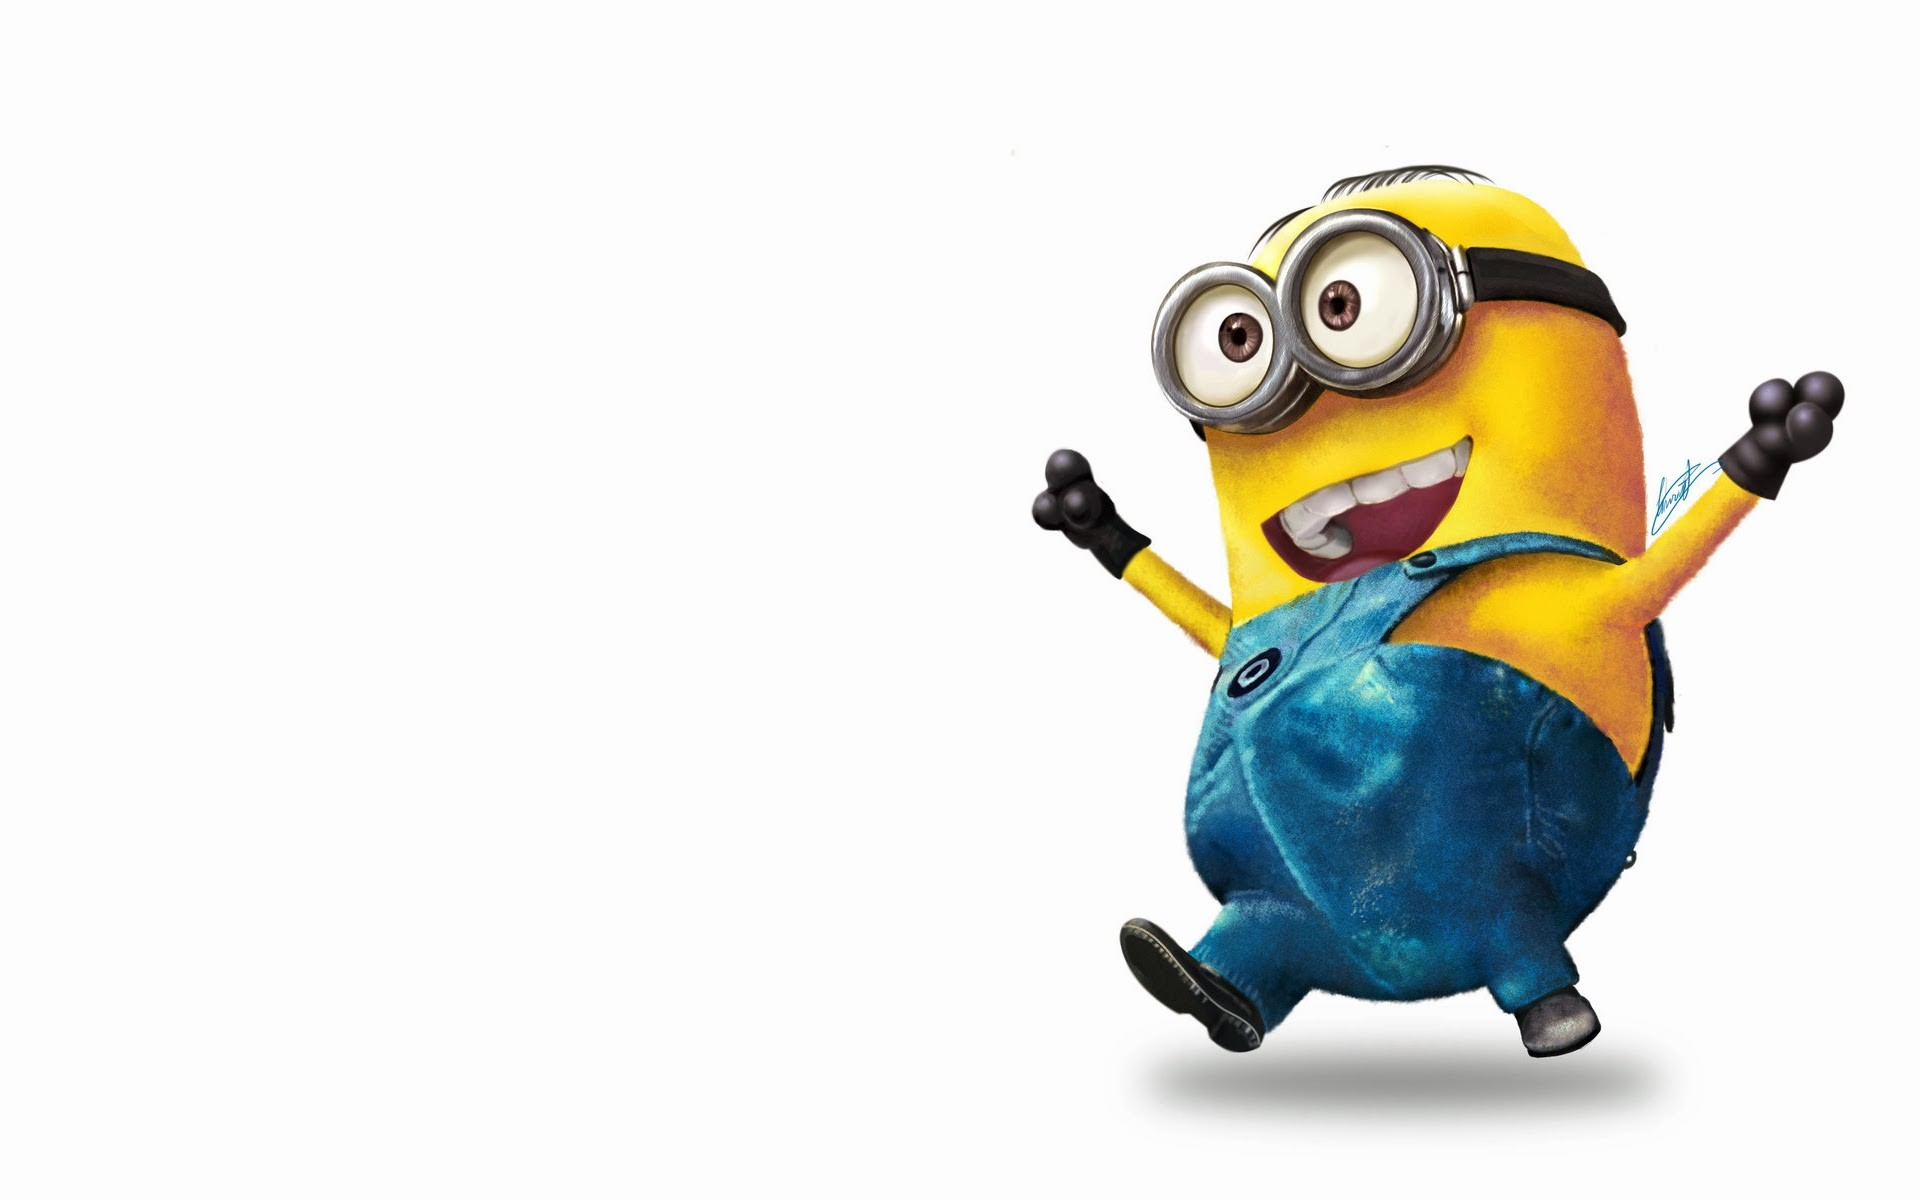 Minion Wallpapers, | Wallpapers PC Gallery